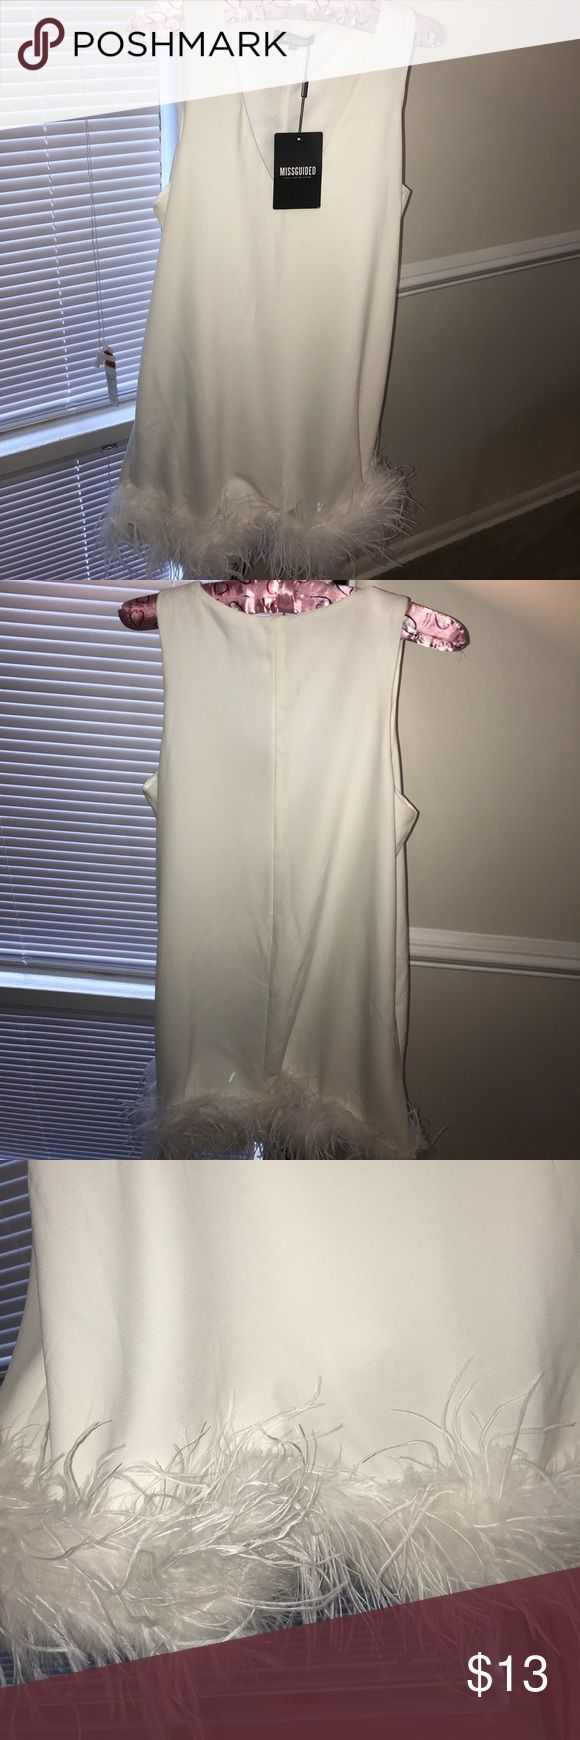 Miss Guides Dress w/Feathers Cream Cocktail Dress with white feathers at the bottom! Slip attached. Suppose to be loose fitting! More of a mini dress, feathers stop above your knee. Size US 8/EU 40/ UK 12.  95% Polyester, 5% Elastane. Missguided Dresses Mini